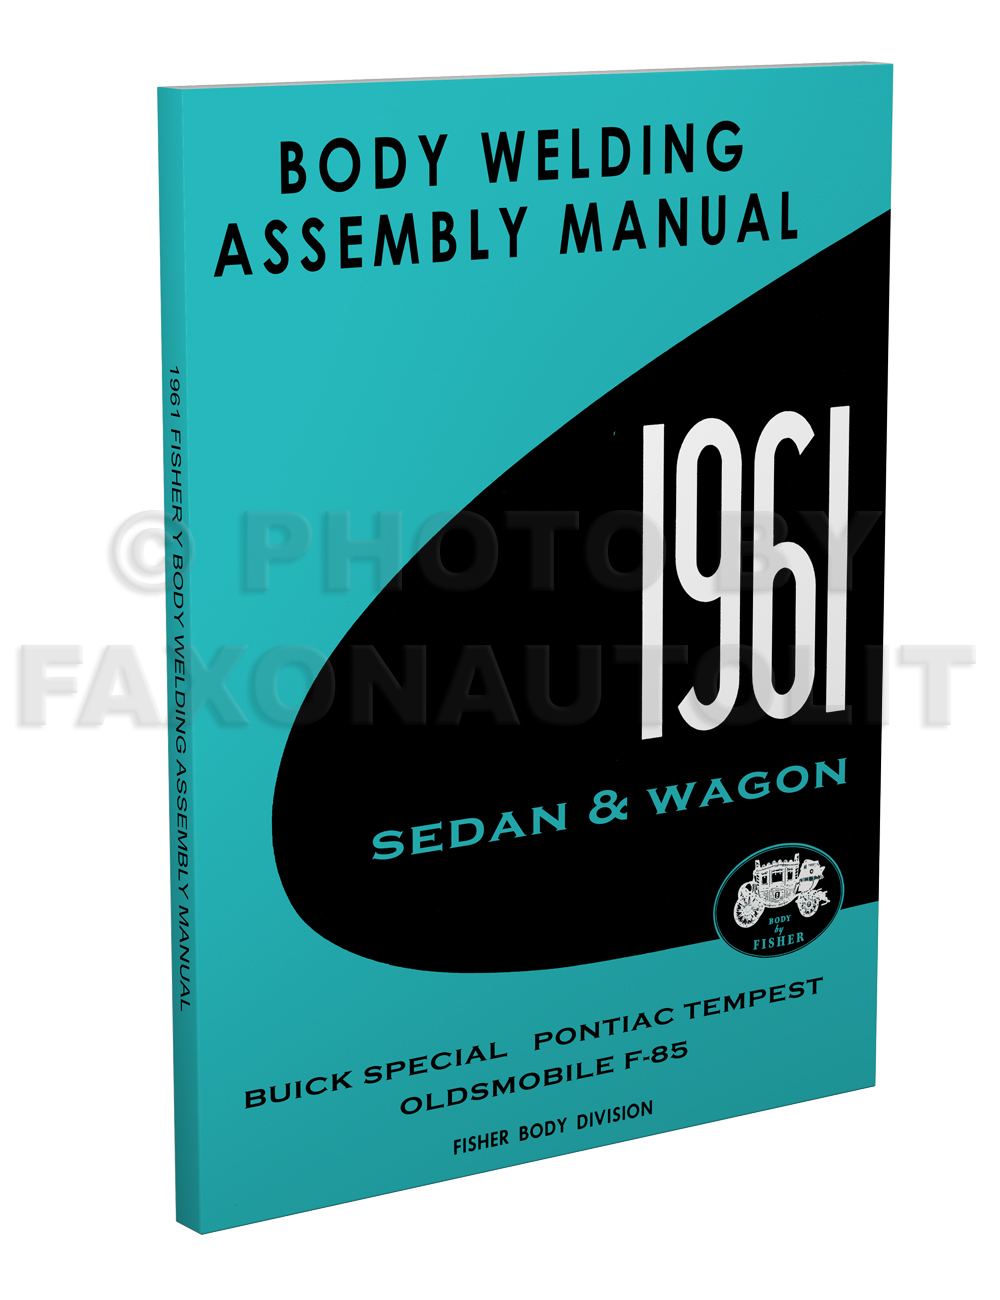 1961 Fisher Body Welding Assembly Manual - Pontiac Tempest  Buick Special Oldsmobile F-85